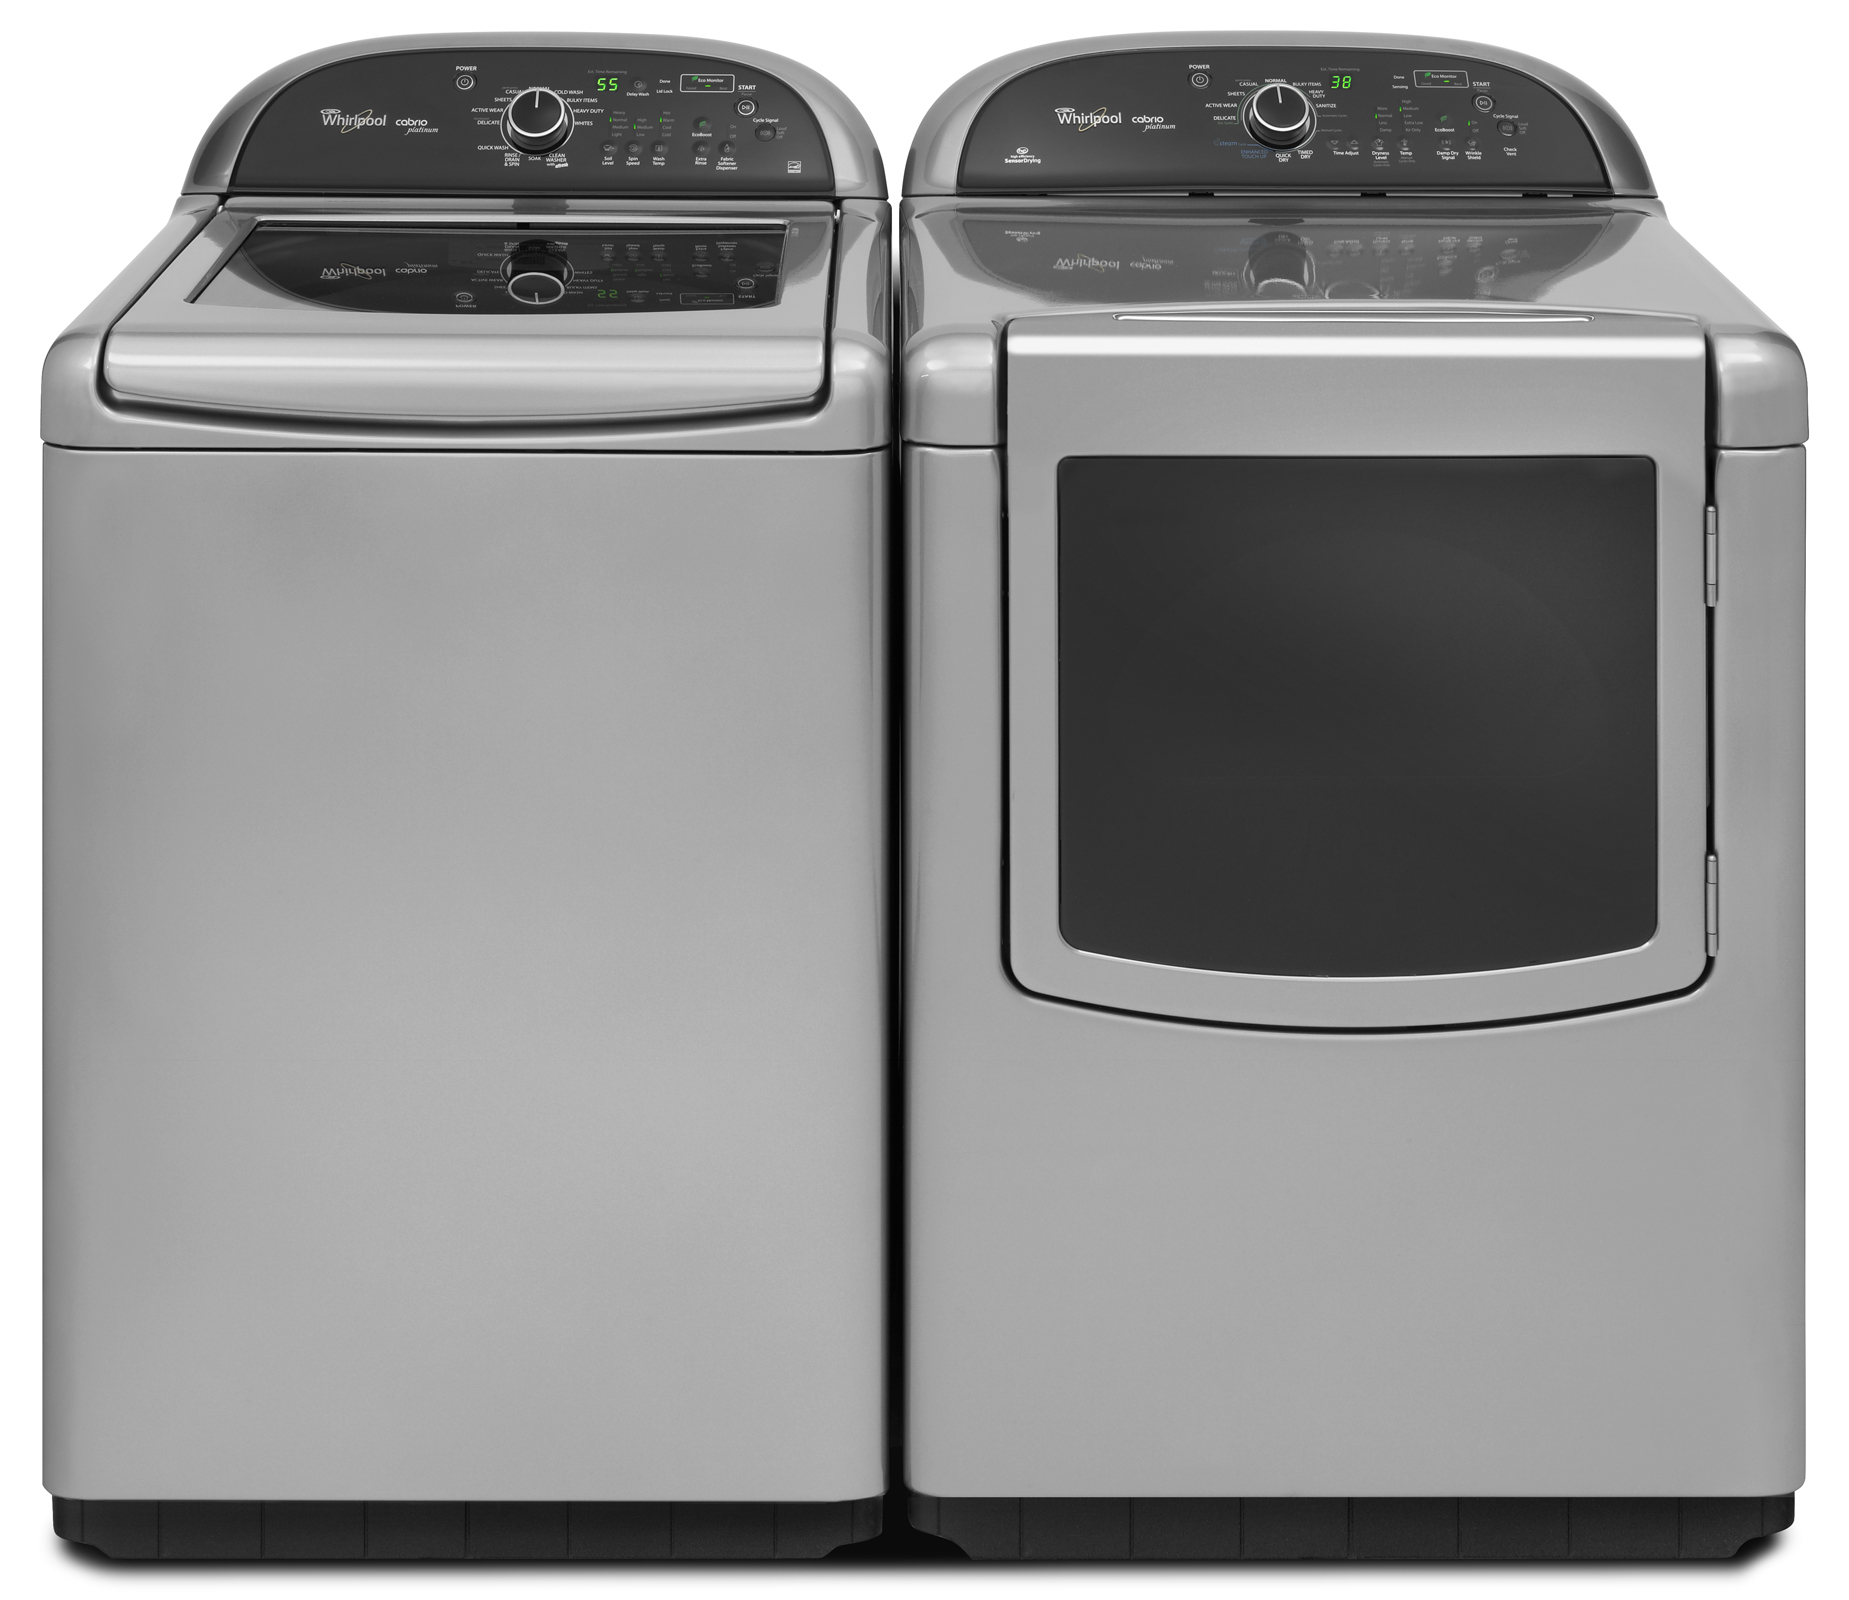 Whirlpool 7.6 cu. ft. Cabrio® Platinum Electric Dryer w/ Enhanced Touch-Up Steam Cycle - Chrome Shadow